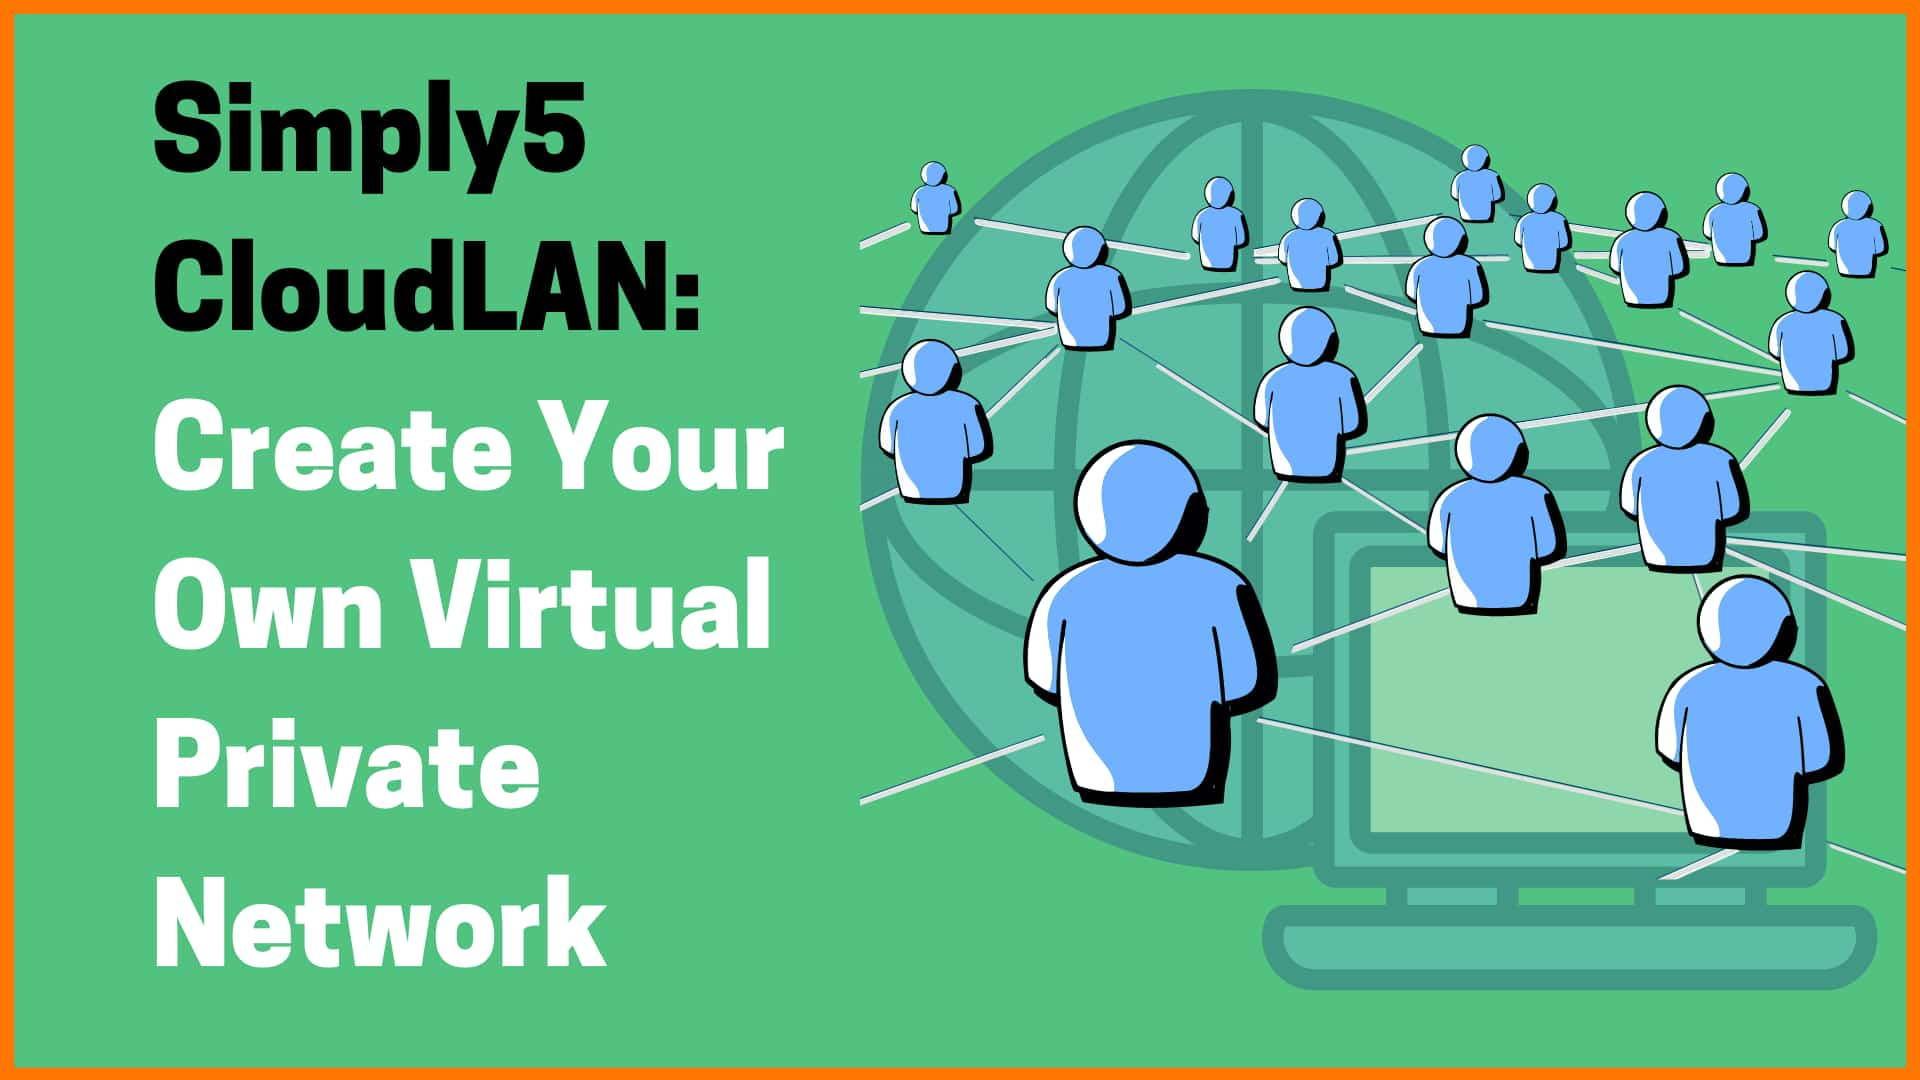 Simply5 CloudLAN: Build Your Own Secure Virtual Private Network.